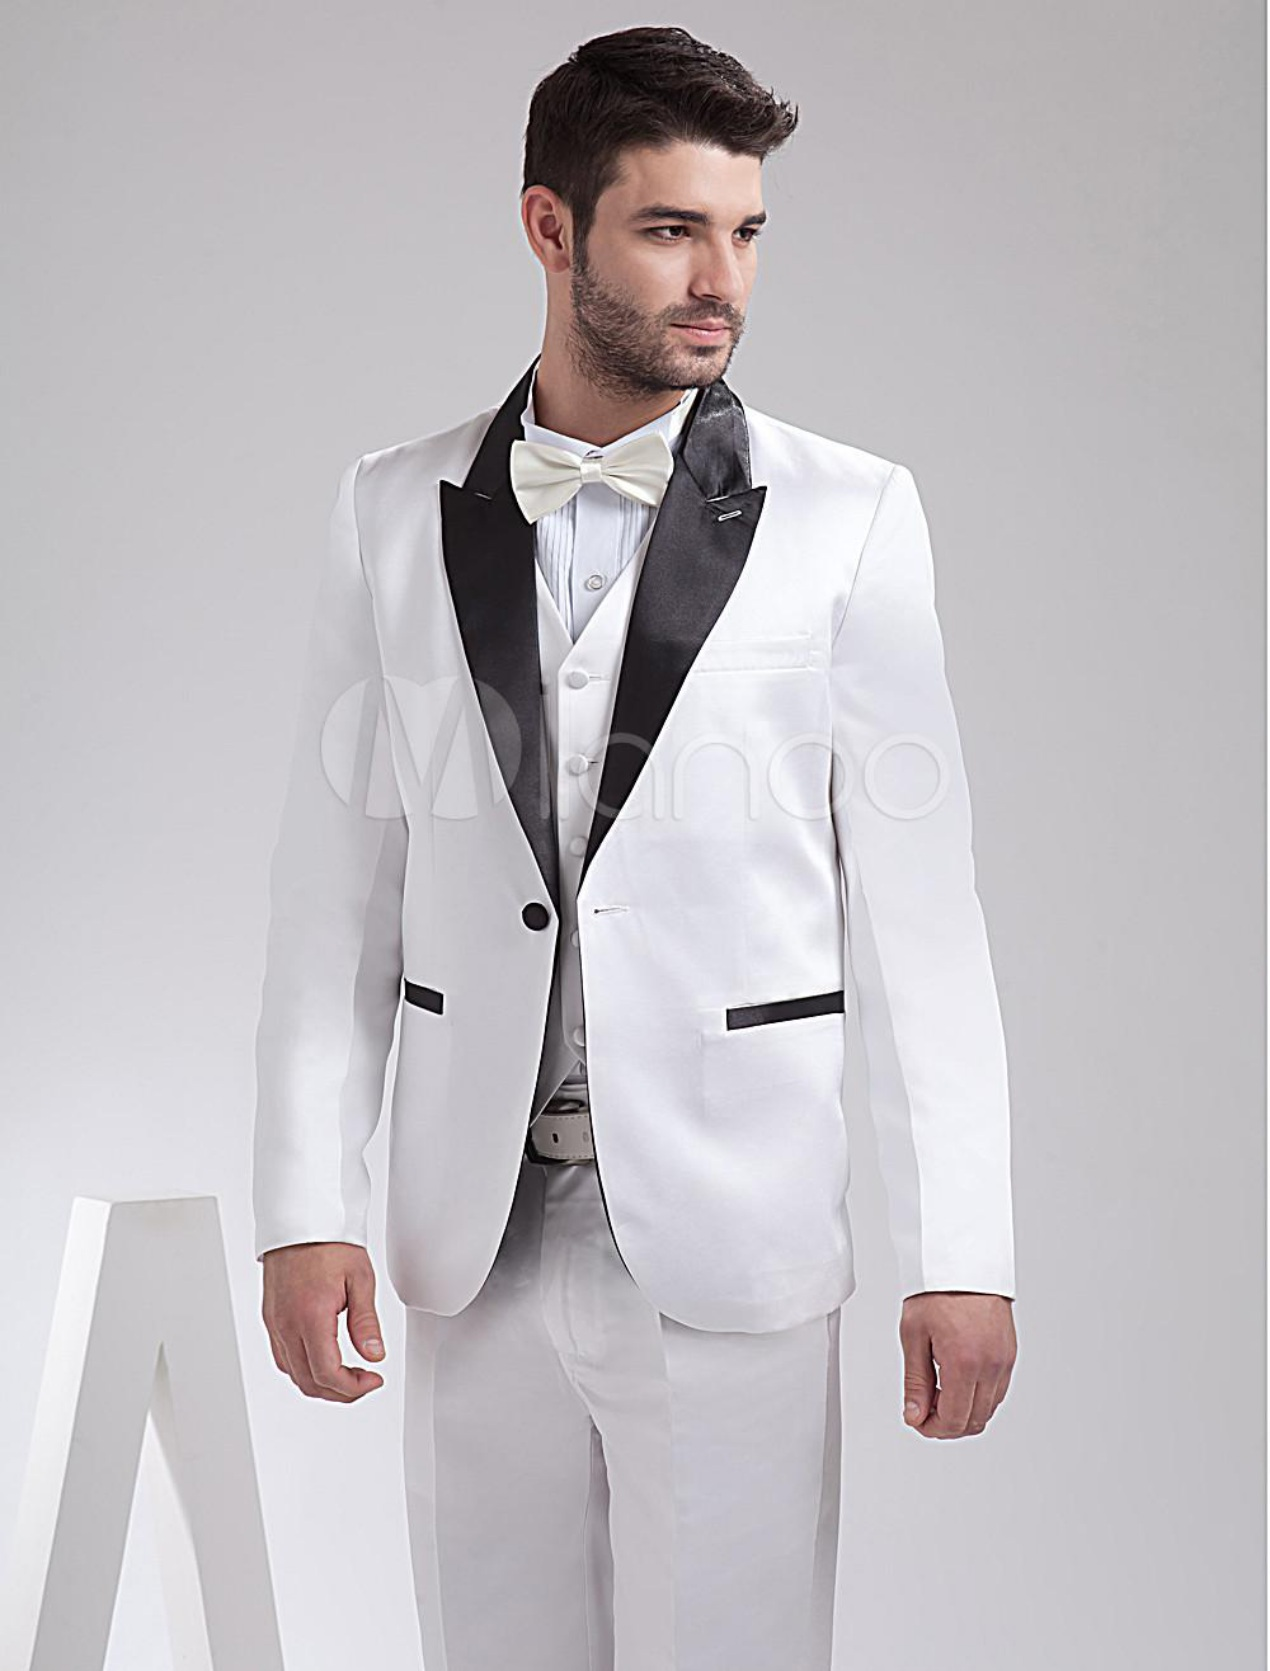 White Wedding Dress for Groom